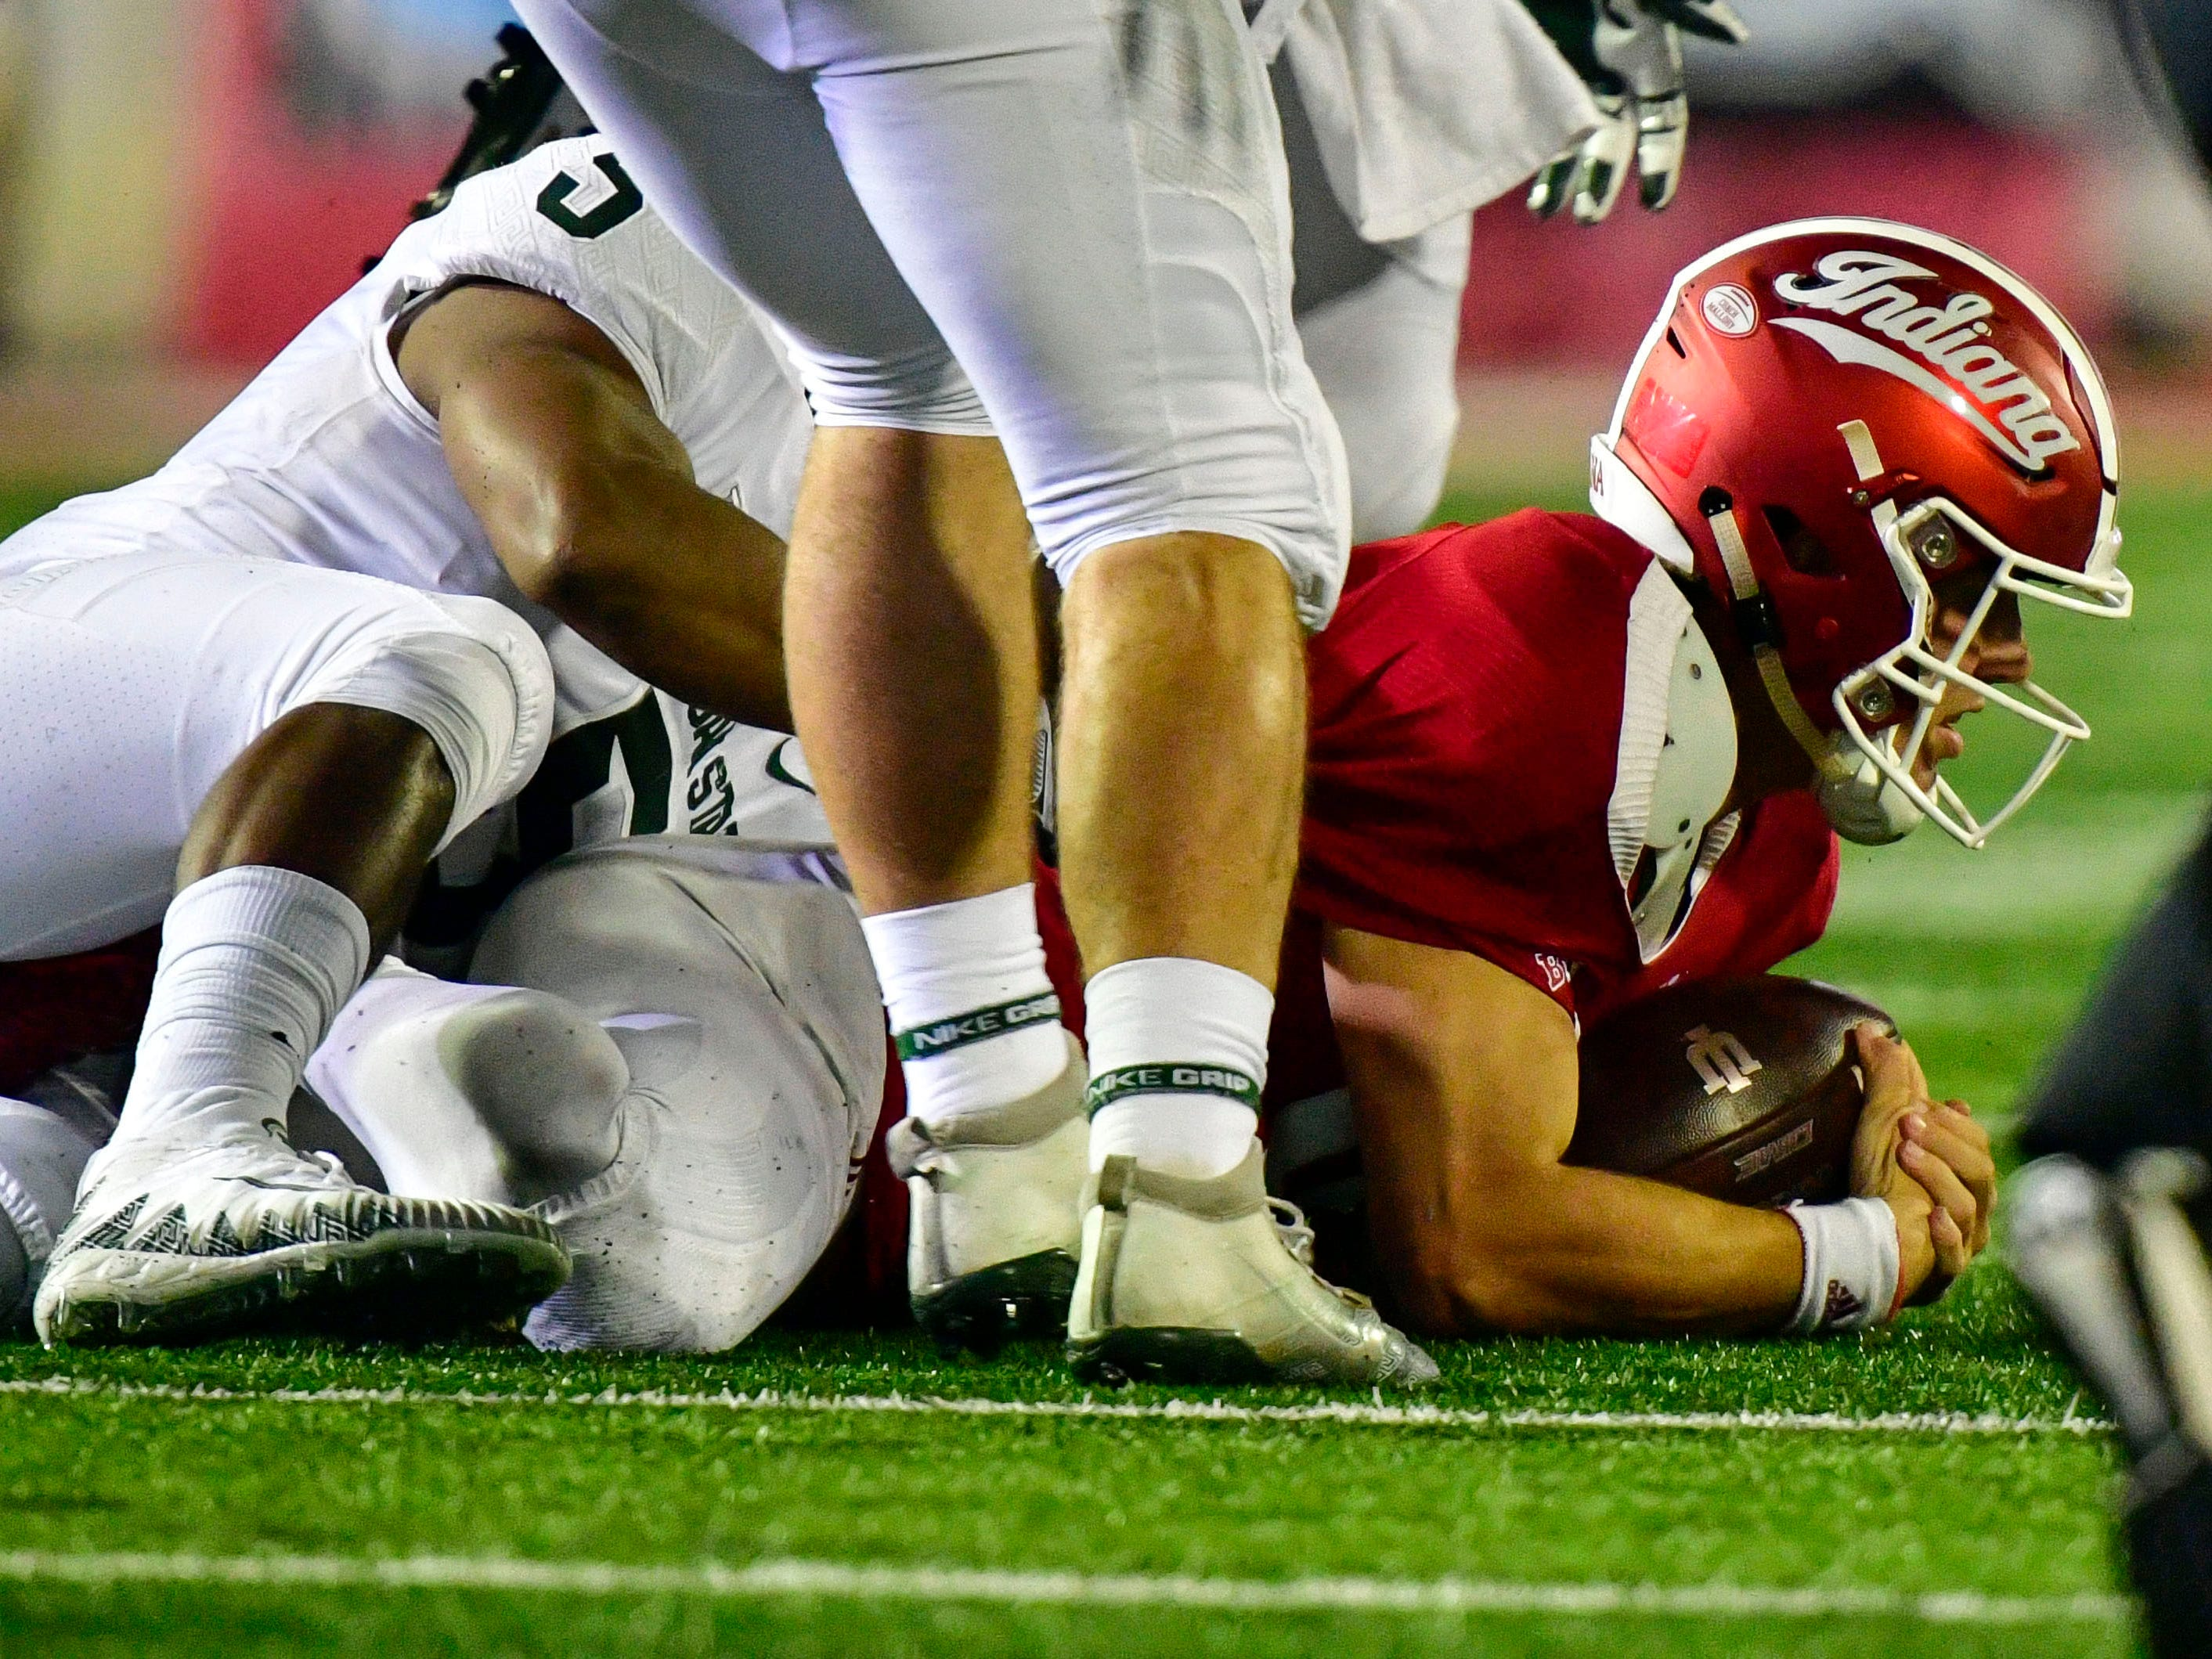 Indiana Hoosiers quarterback Peyton Ramsey (12) is sacked during the second half of the game by the Michigan State Spartans at Memorial Stadium. The Michigan State Spartans defeated the Indiana Hoosiers 35 to 21.